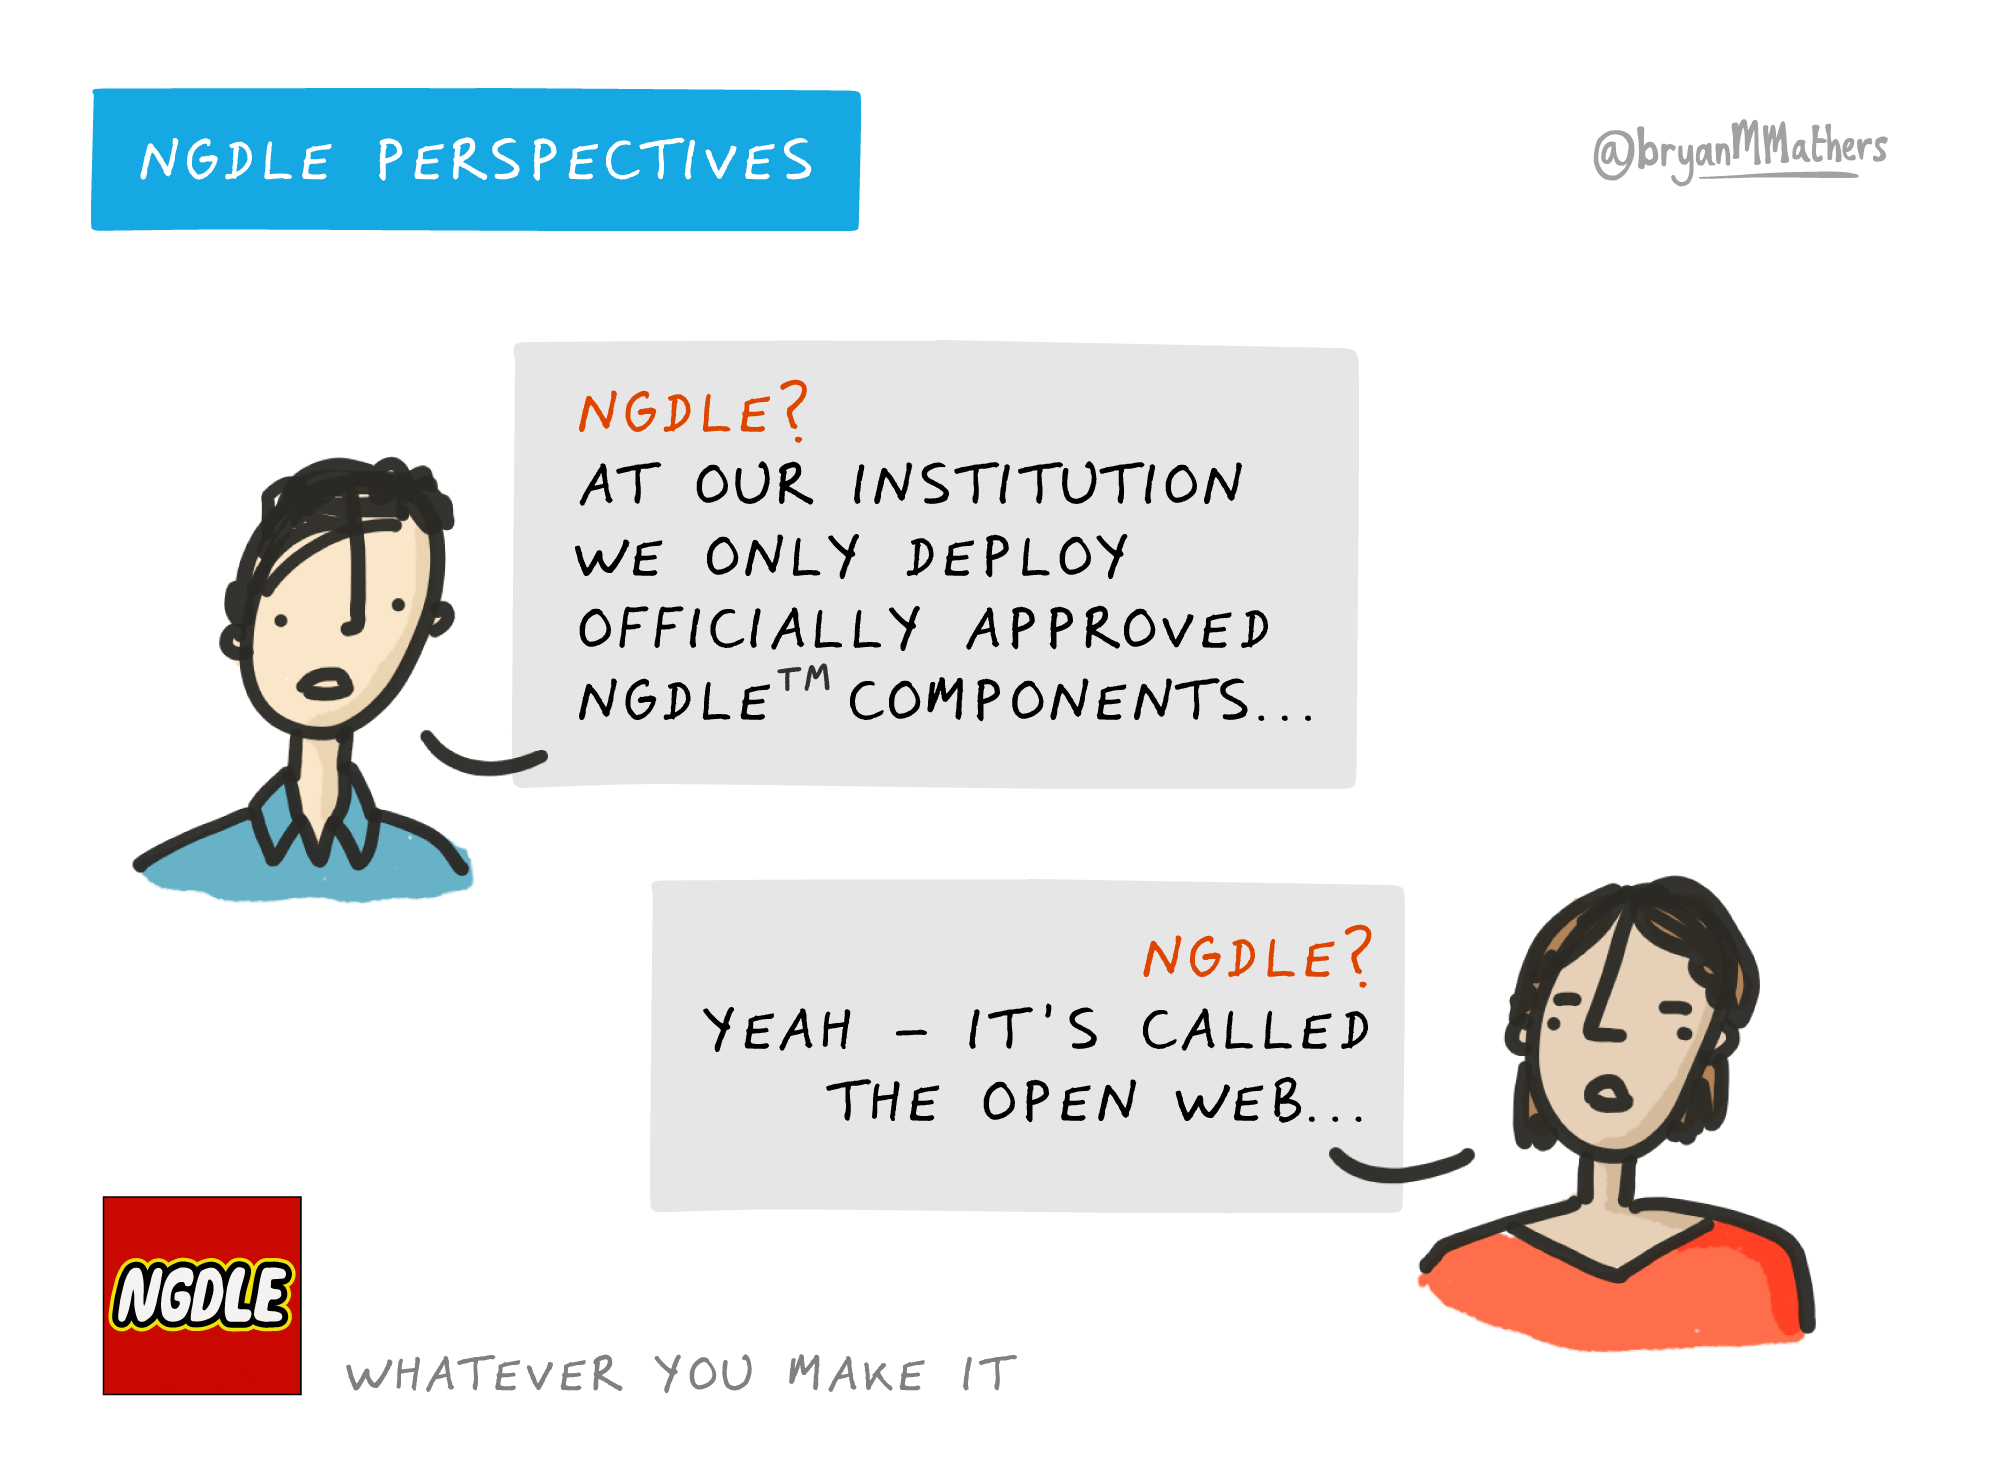 NGDLE Perspectives